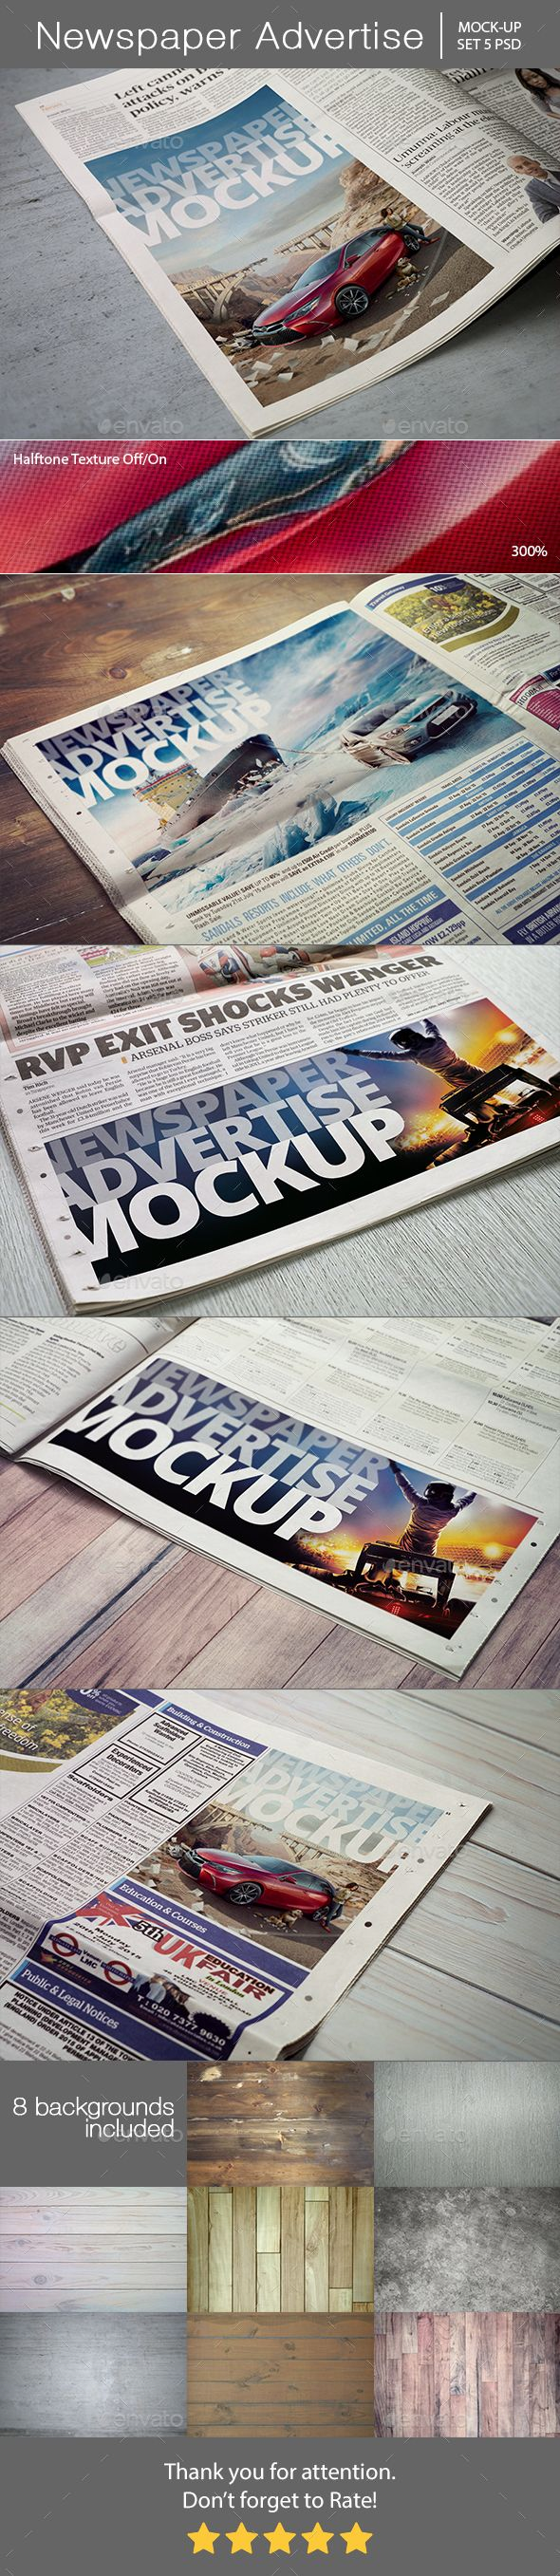 Newspaper Advertise Mockup #design Download: http://graphicriver.net/item/newspaper-advertise-mockup/13345143?ref=ksioks